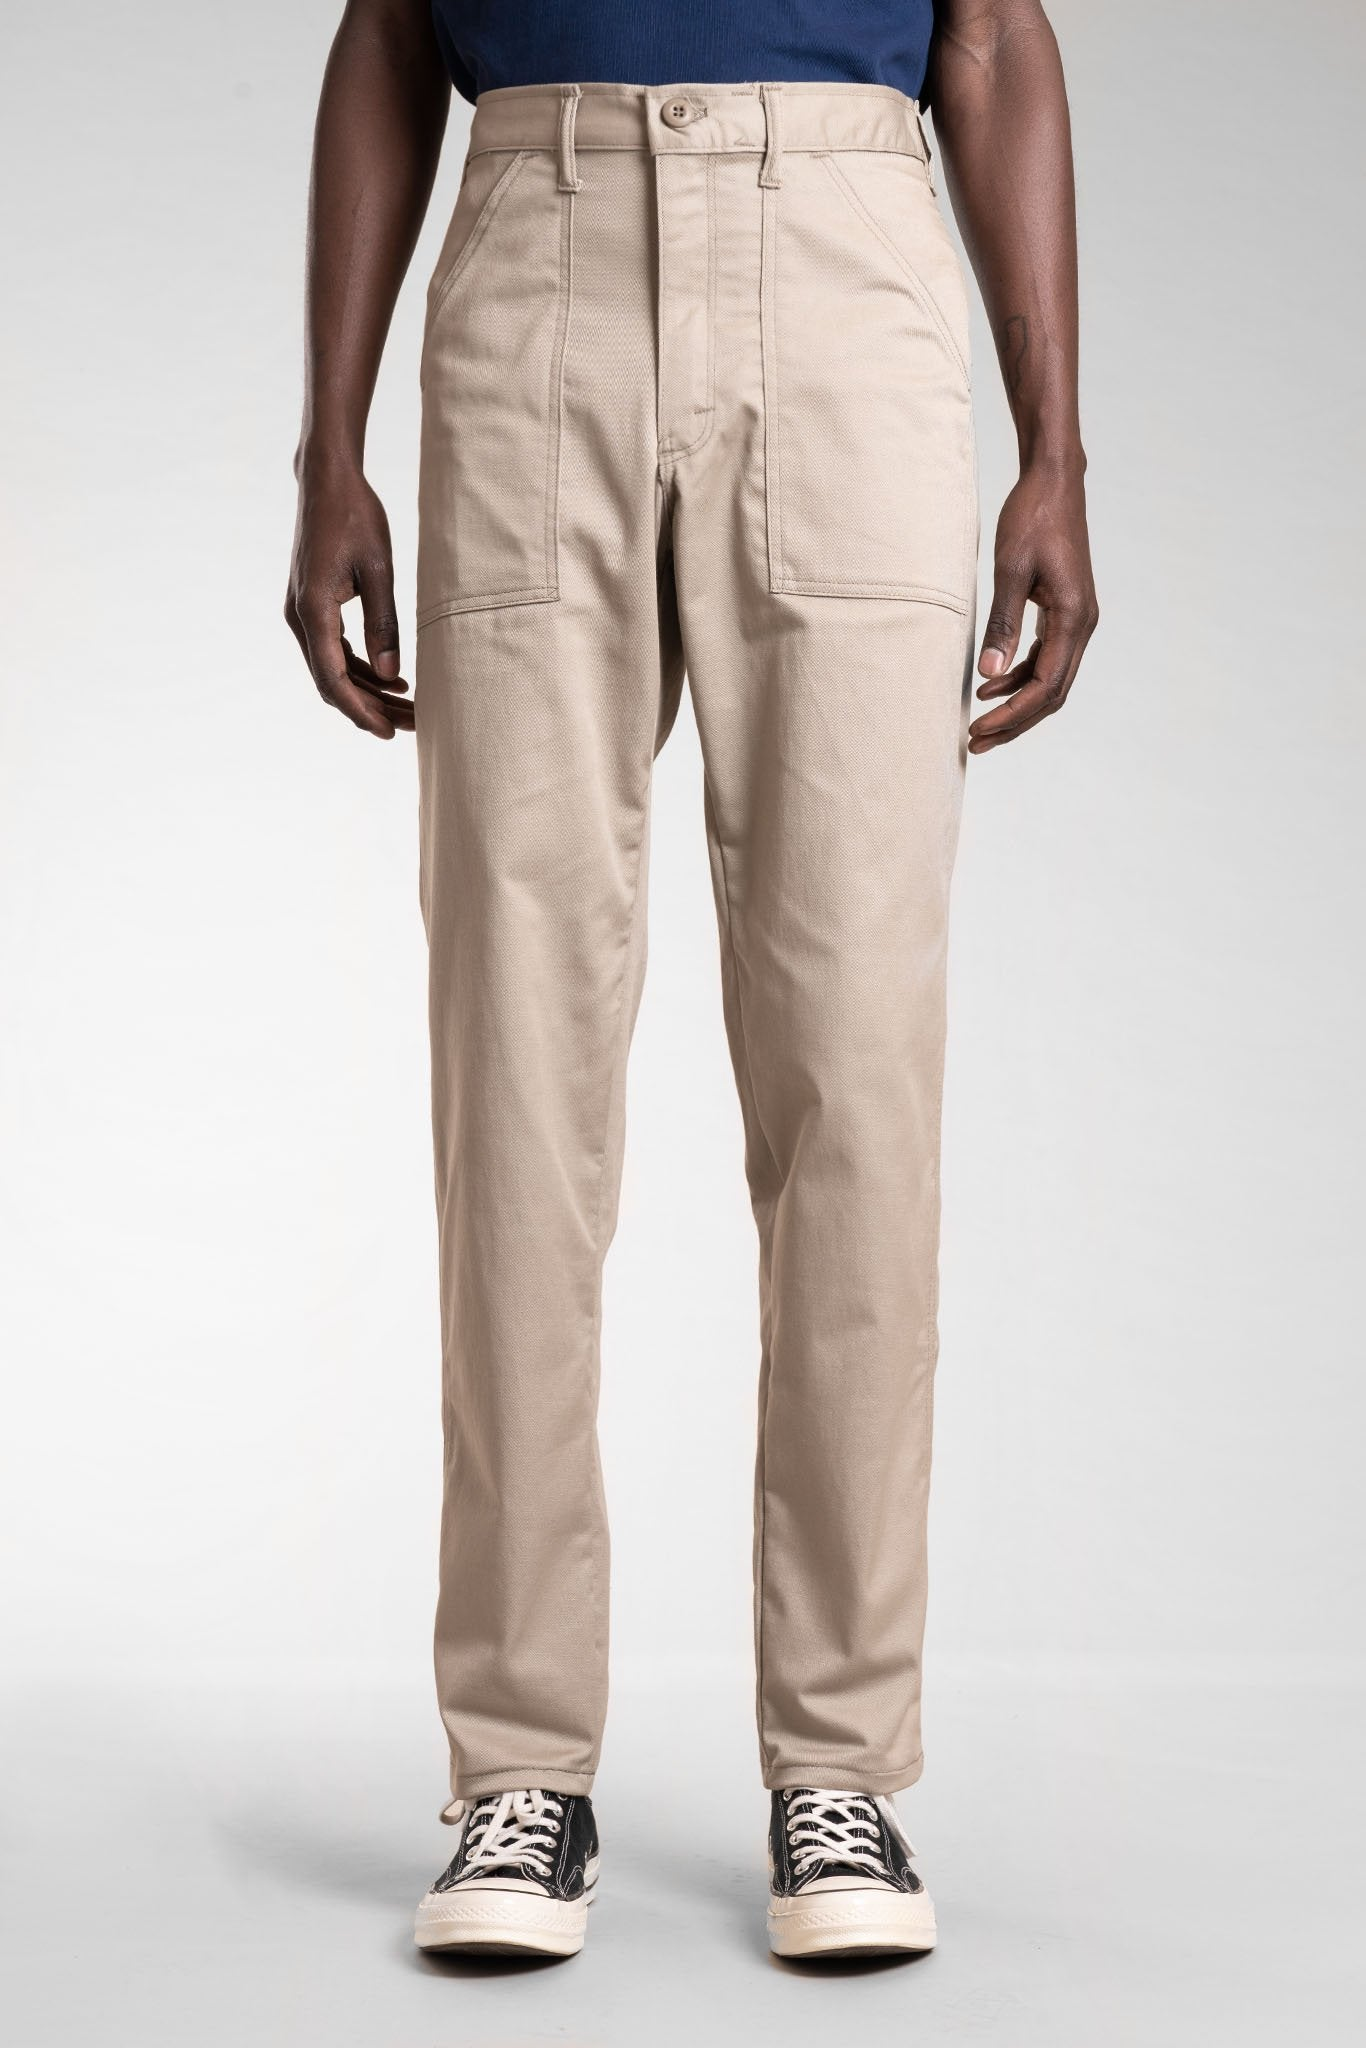 stan ray - taper fit fatigue pant 1